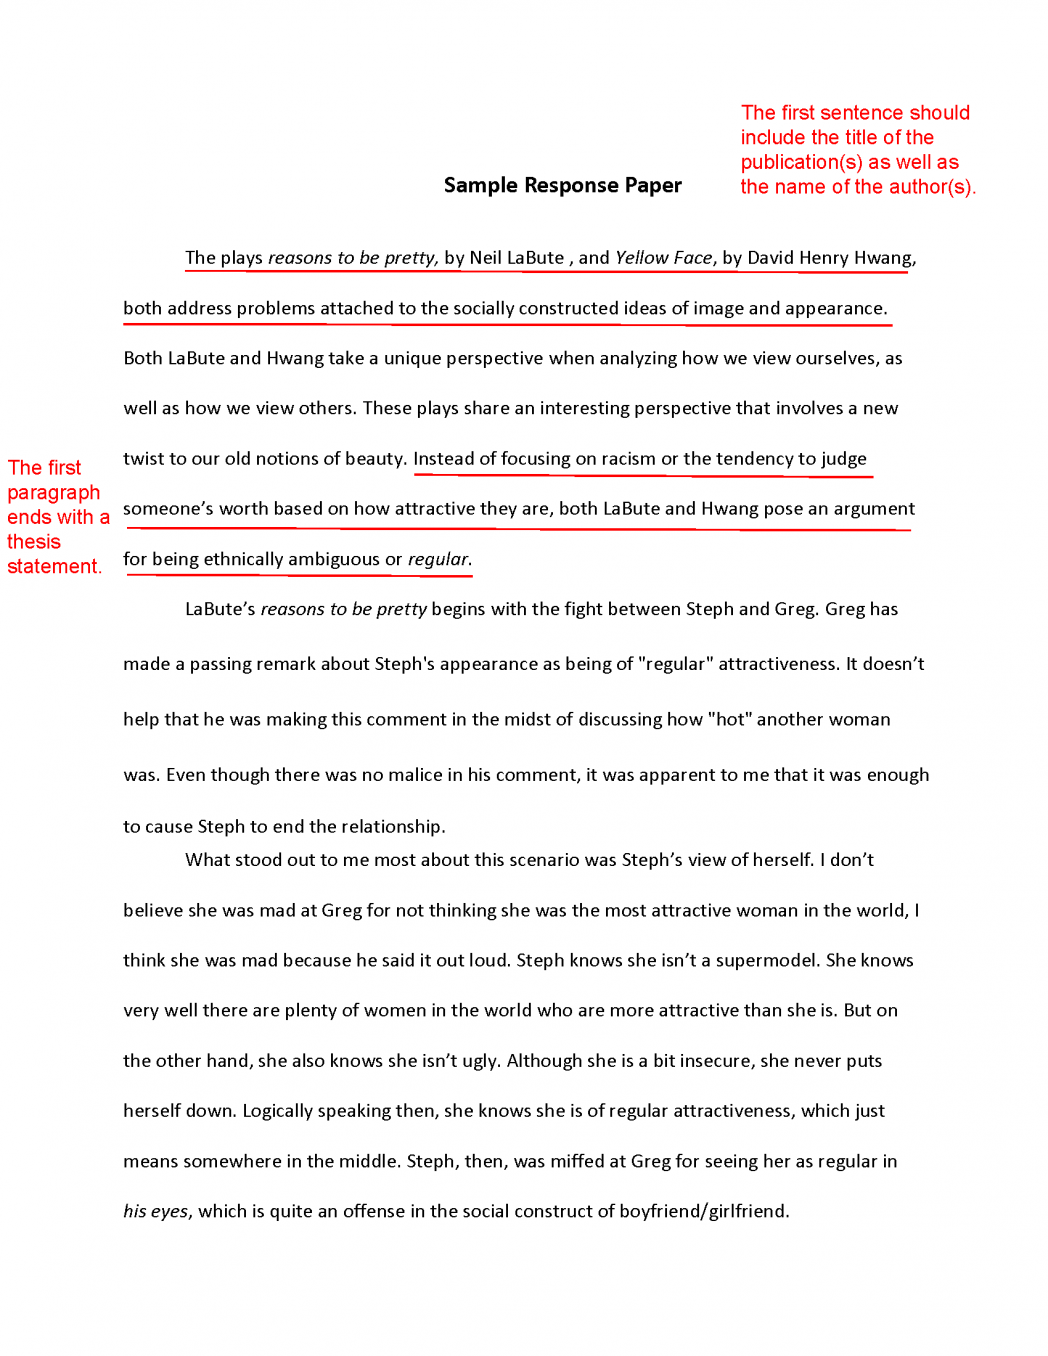 020 Essay Example What Is Good Hook For An Hooks Persuasive Essays Sample Paper Great Res On School Uniforms Writing Dreaded A Whats About Technology Animal Farm Full